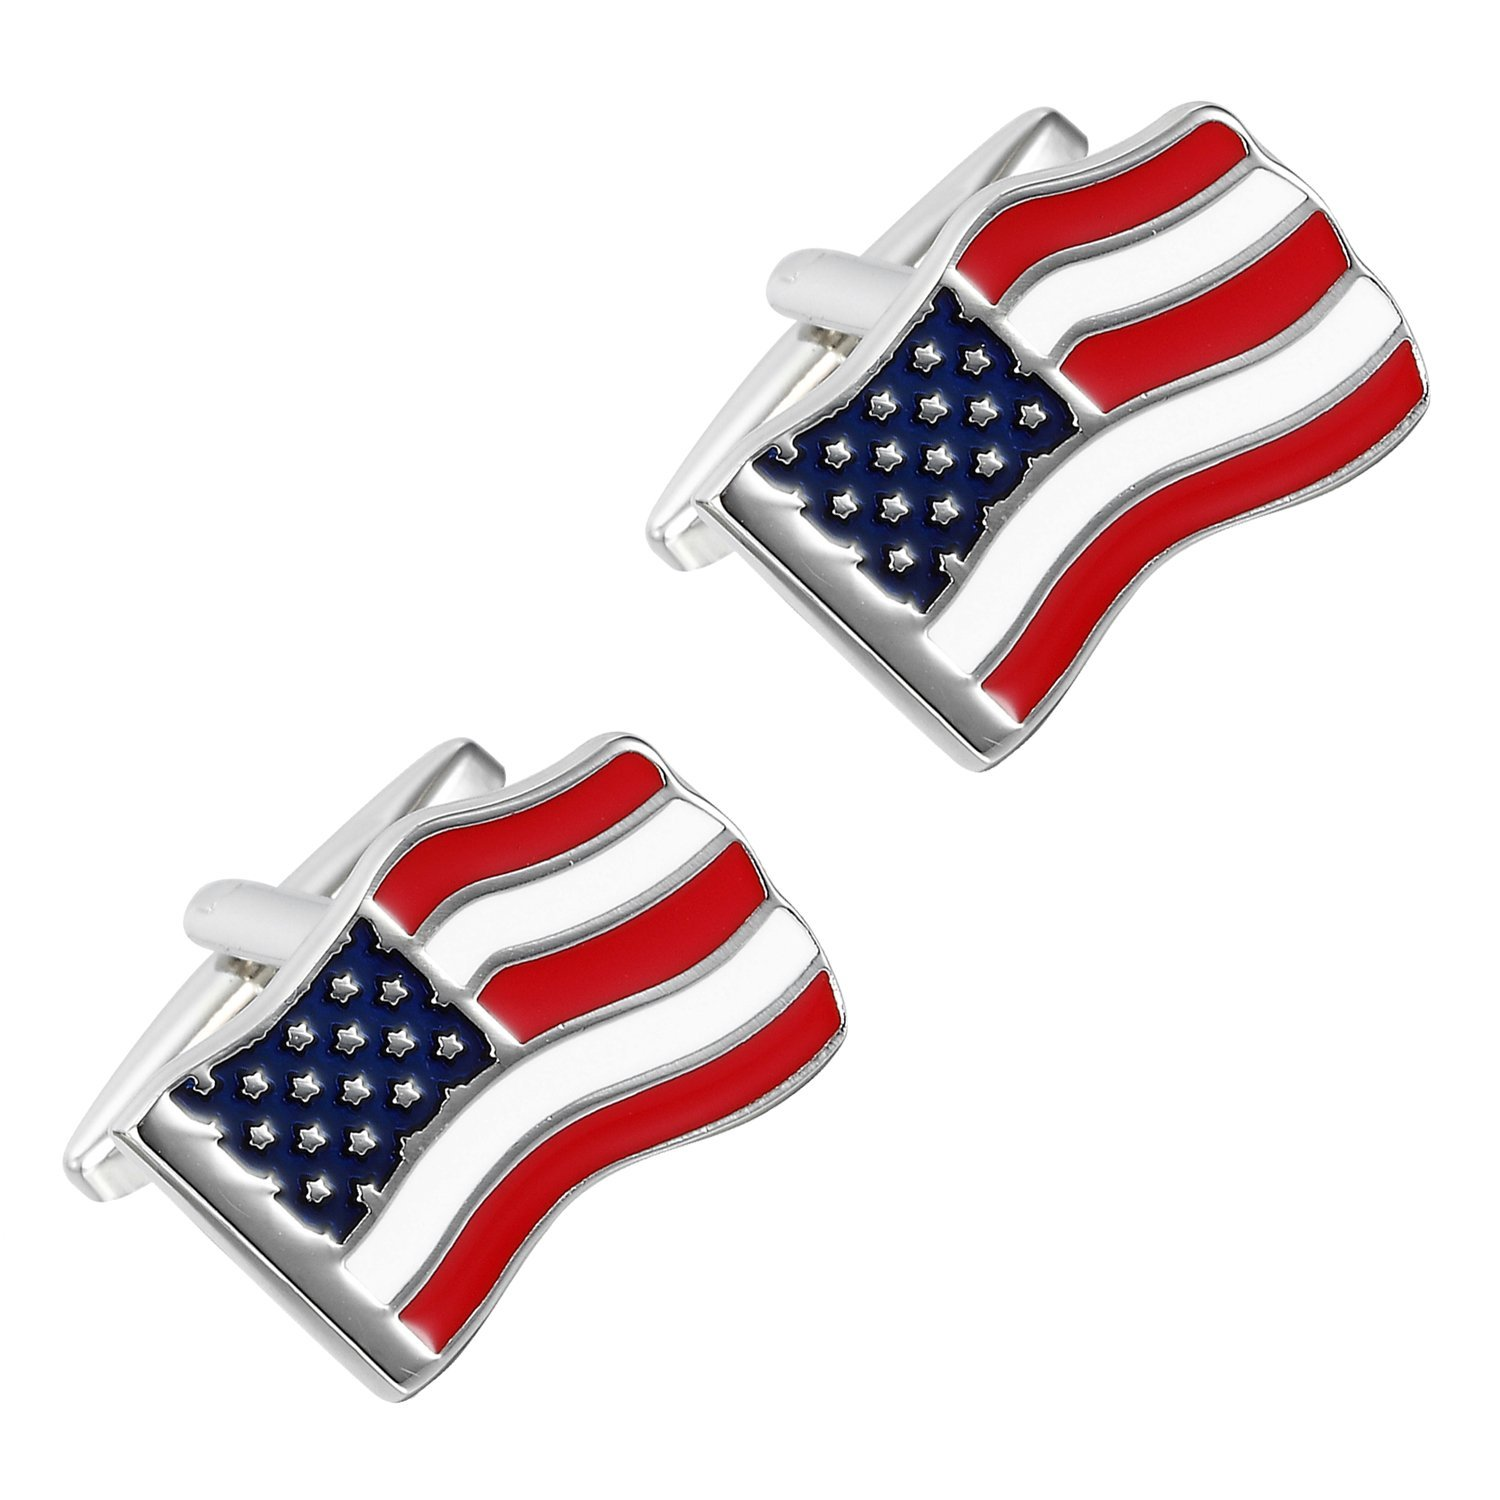 Urban Jewelry Loyal Patriot Stainless Steel USA Flag Men's Cufflinks (Red, Blue, White, Silver) by Urban Jewelry (Image #3)